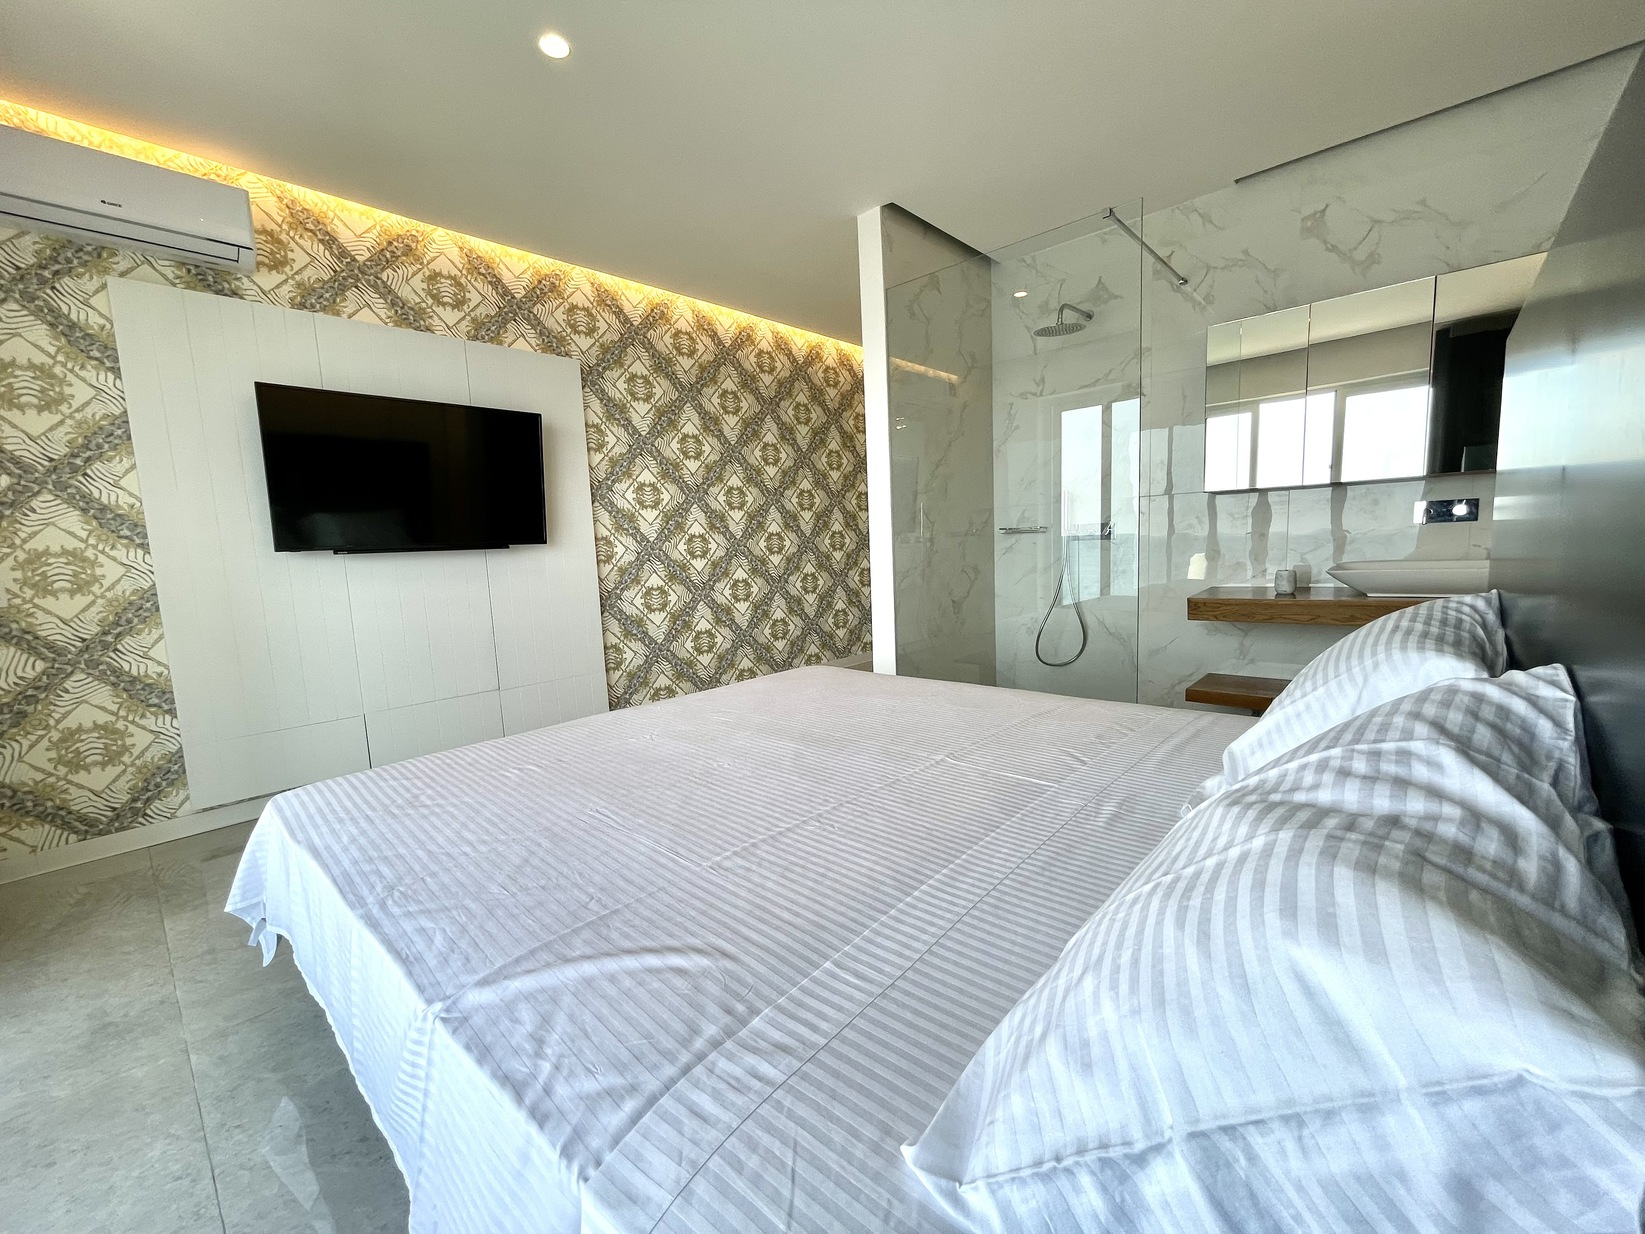 3 bed Penthouse For Rent in Sliema, Sliema - thumb 13